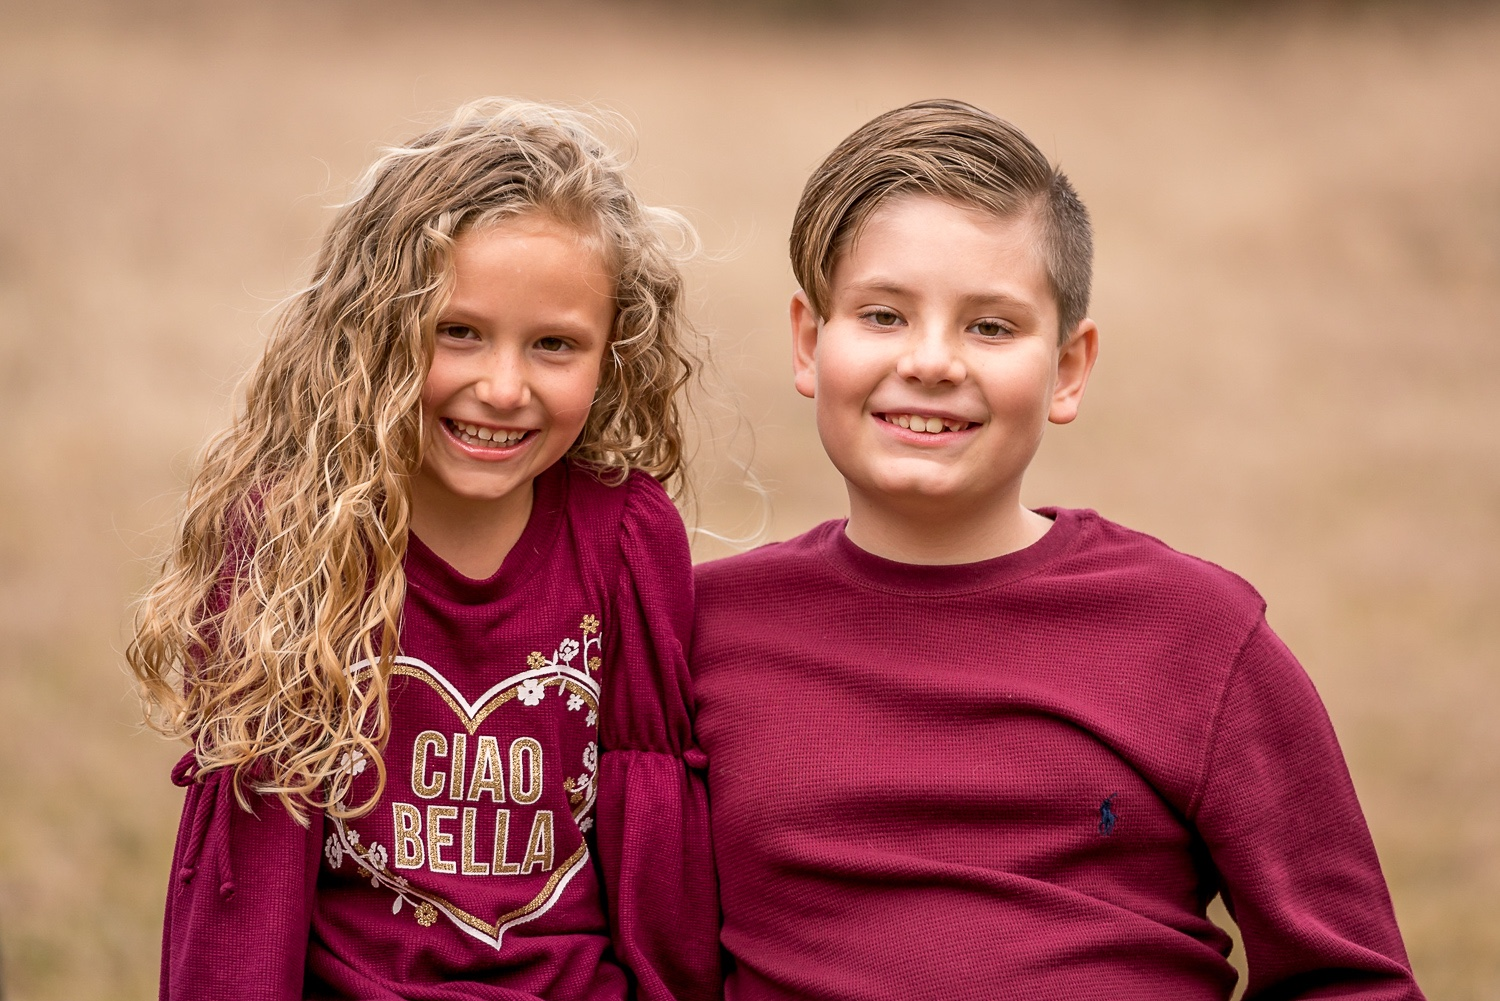 portrait of tweens - The Importance of Getting the Image Right In-Camera